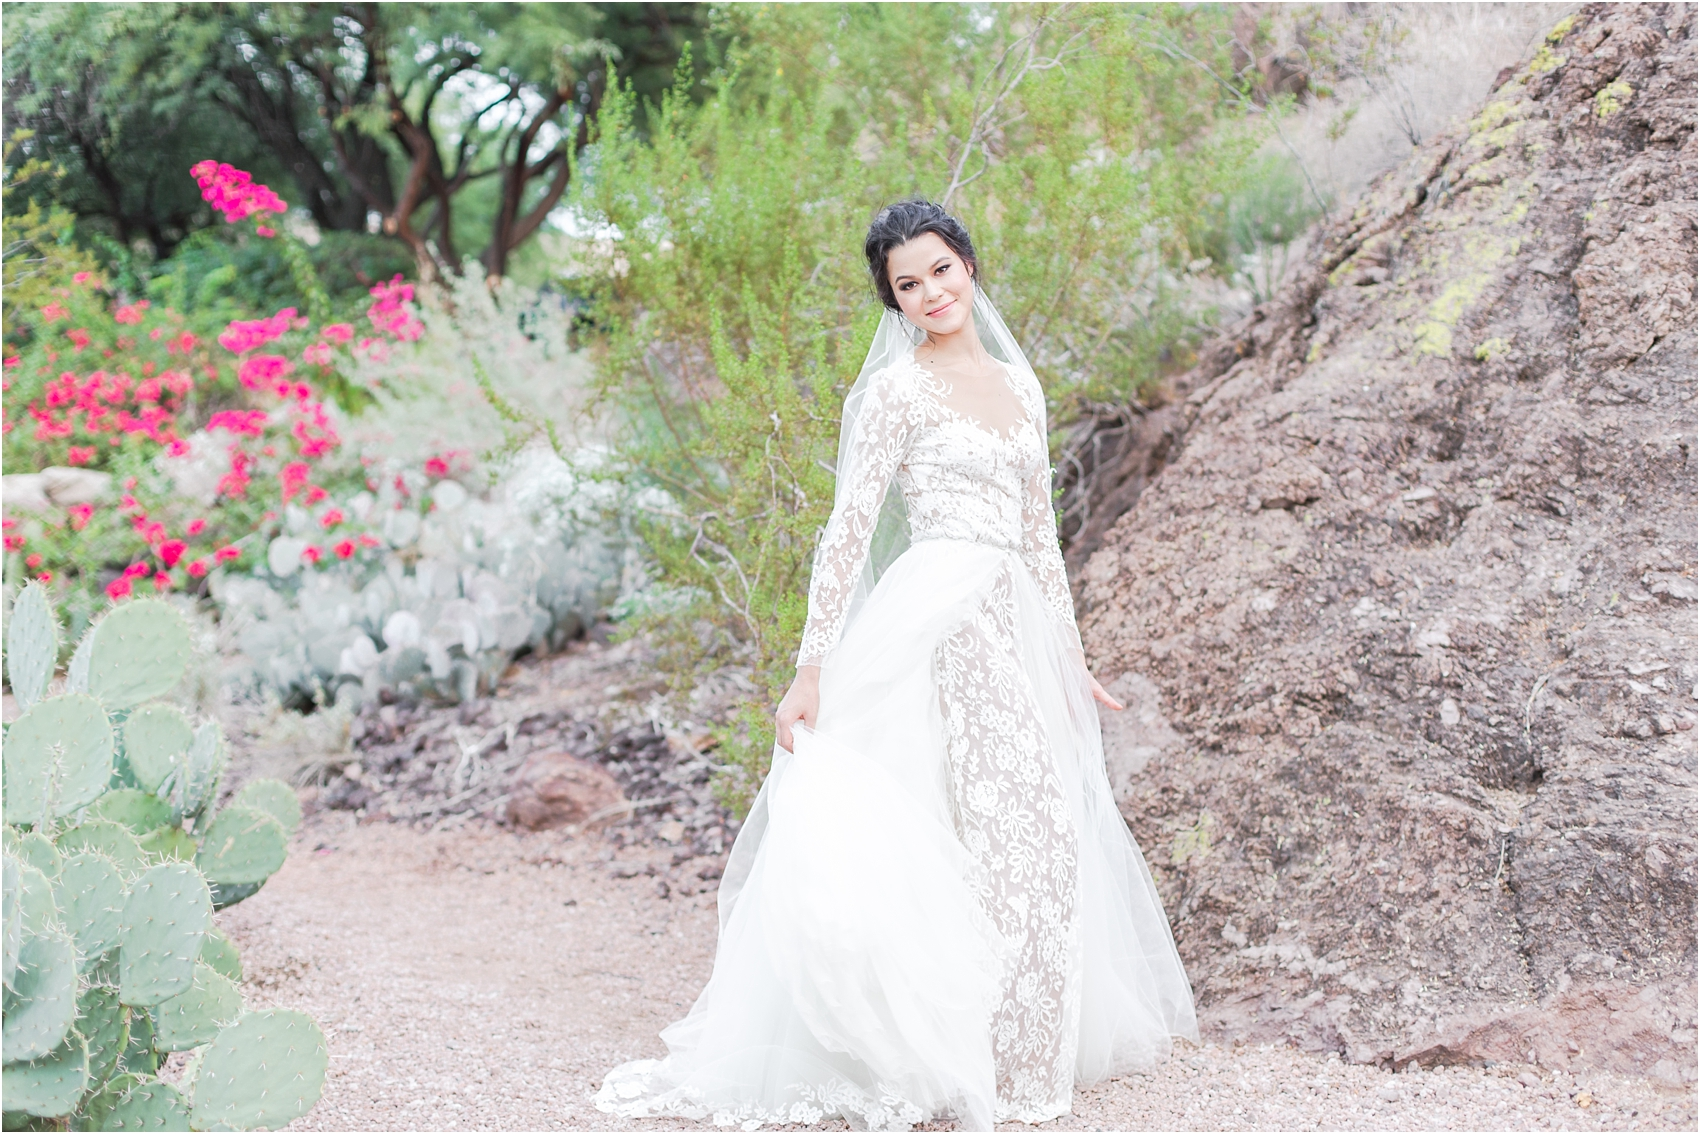 paris-and-ballerina-inspired-bride-wedding-photos-at-phoenix-marriott-tempe-at-the-buttes-in-tempe-arizona-by-courtney-carolyn-photography_0011.jpg